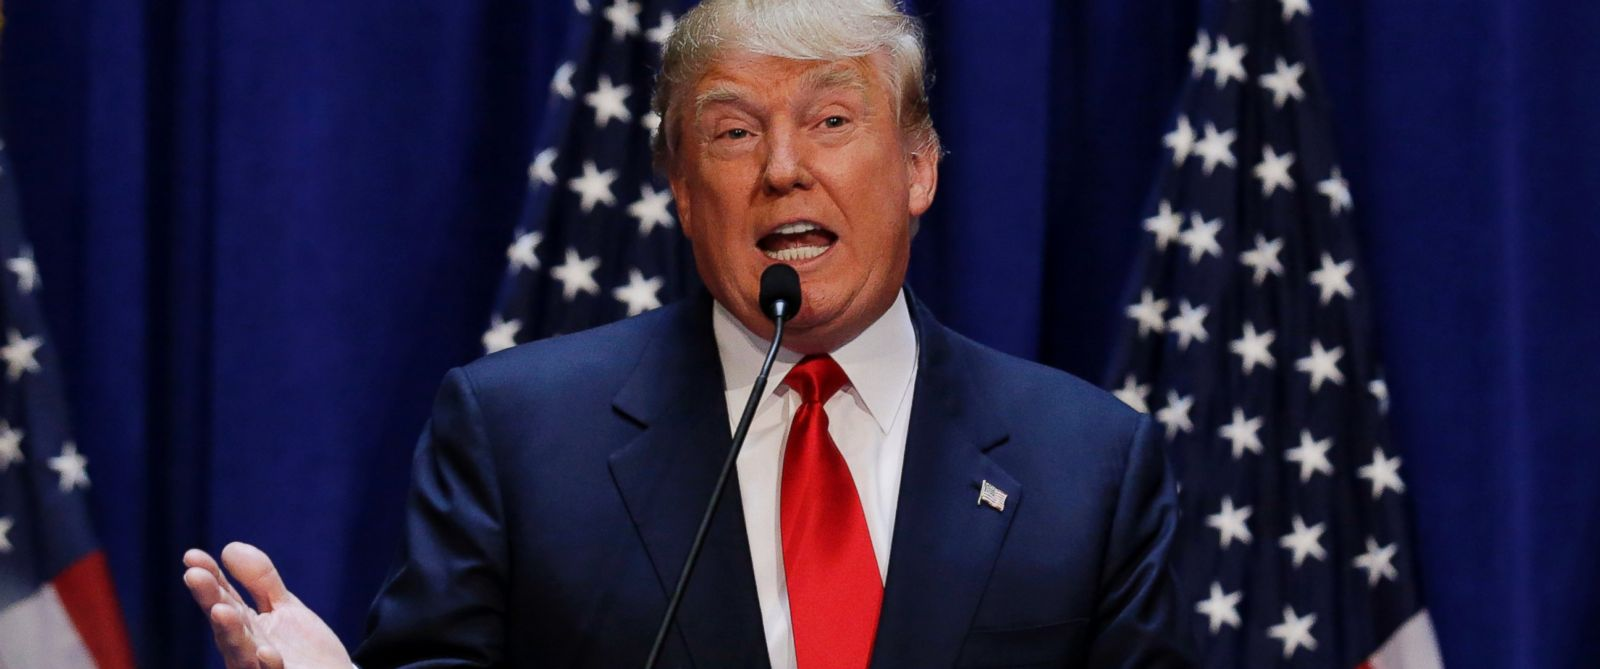 PHOTO: U.S. Republican presidential candidate, Donald Trump, formally announces his campaign for the 2016 Republican presidential nomination during an event at Trump Tower, June 16, 2015, in New York.